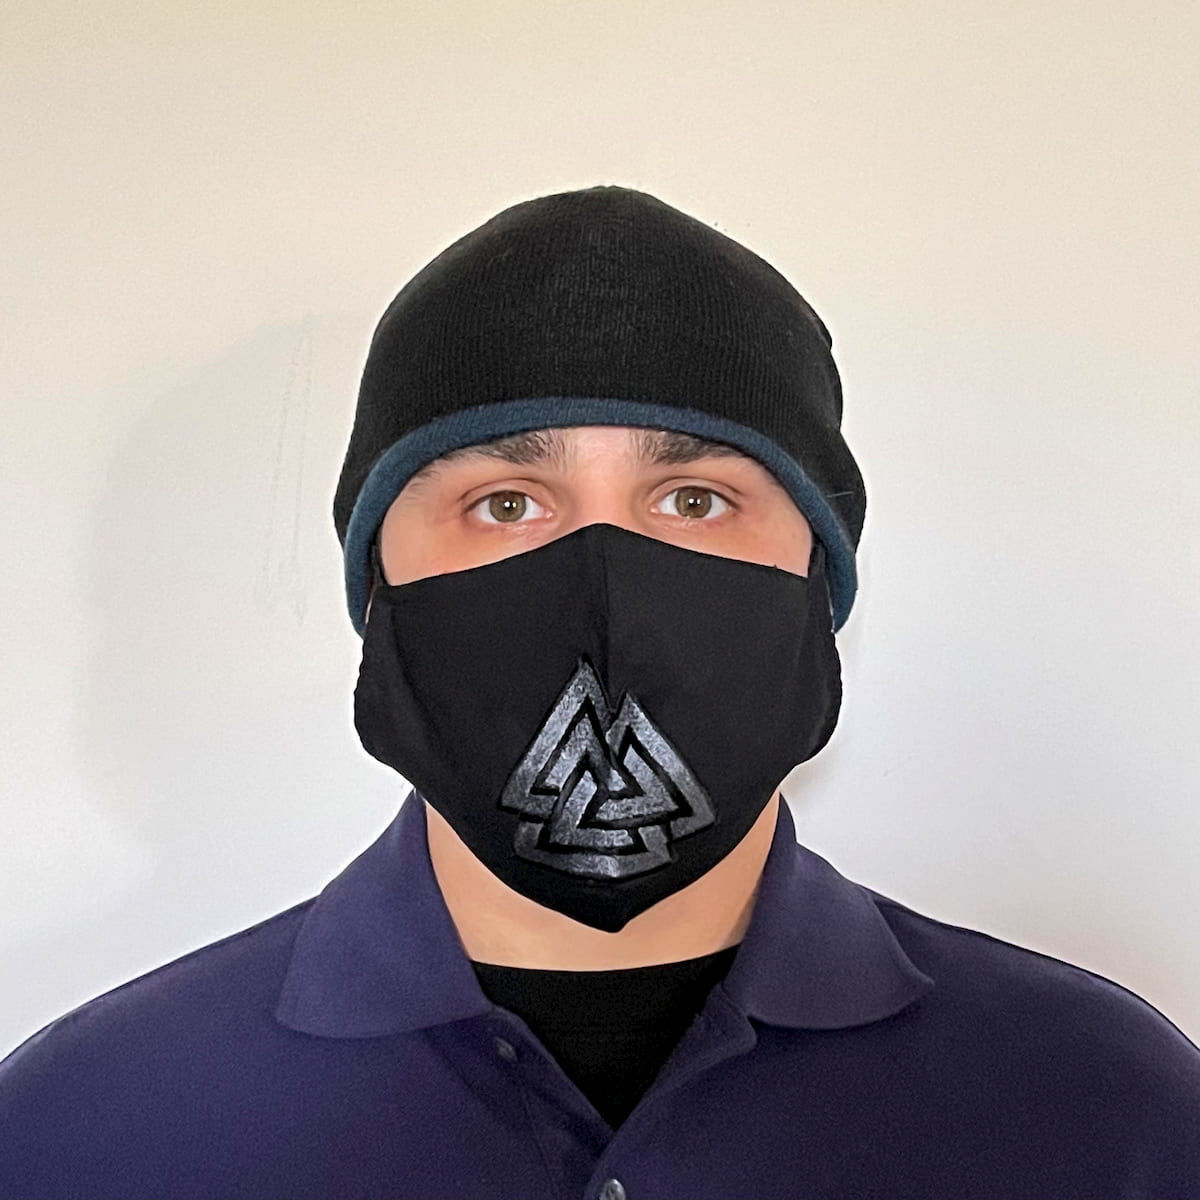 Black Cotton Face Mask with silk embroidered Viking Valknut, adjustable straps and pocket for disposable filter